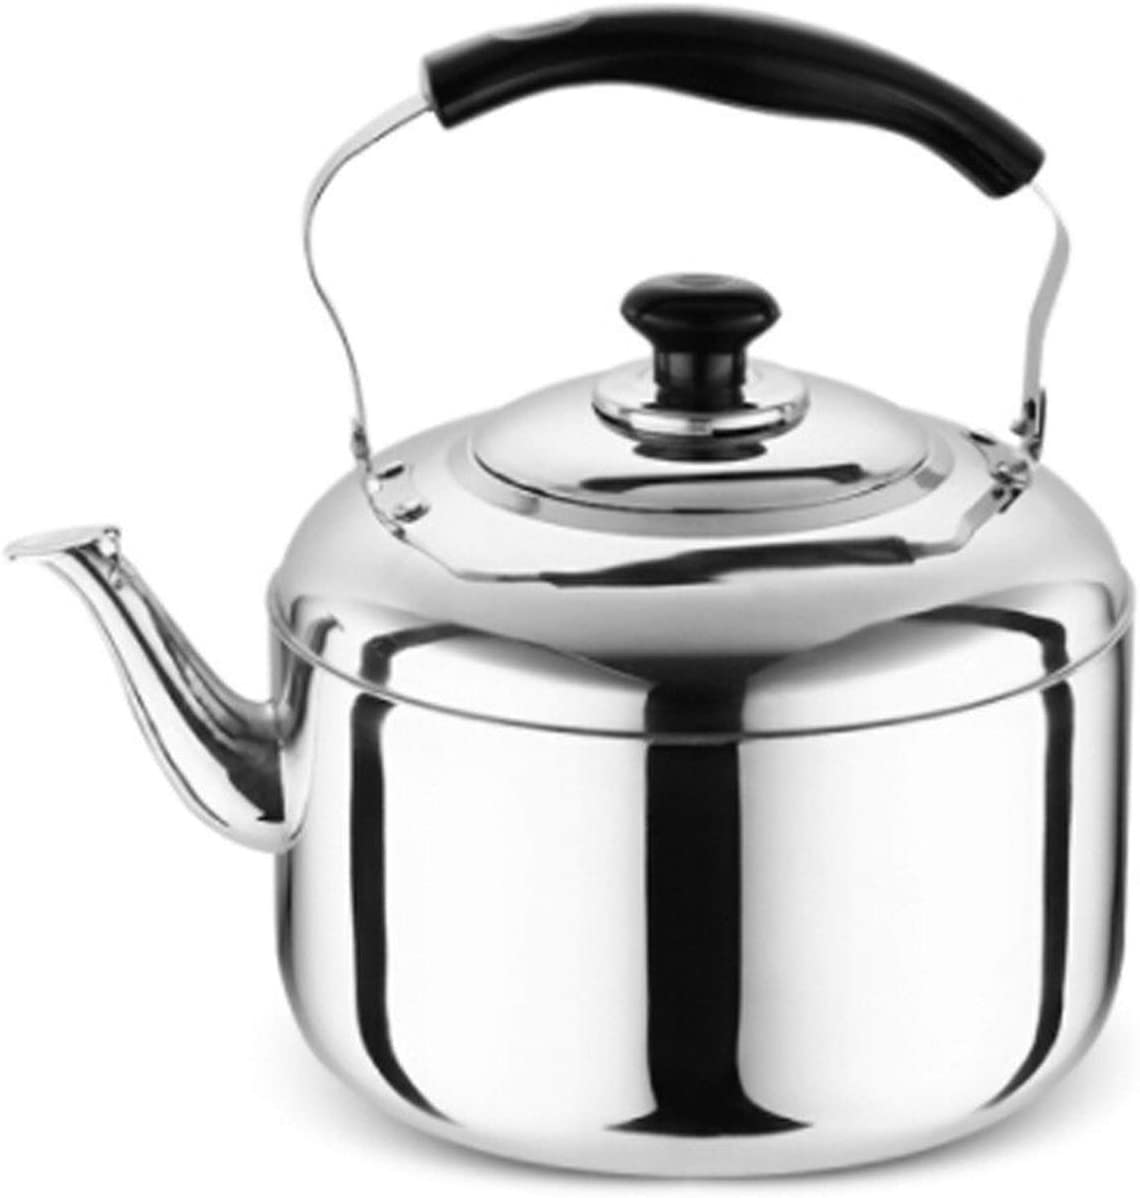 Large Capacity Teapot Ergonomic Max 79% OFF free shipping Food Steel Whis Grade Stainless